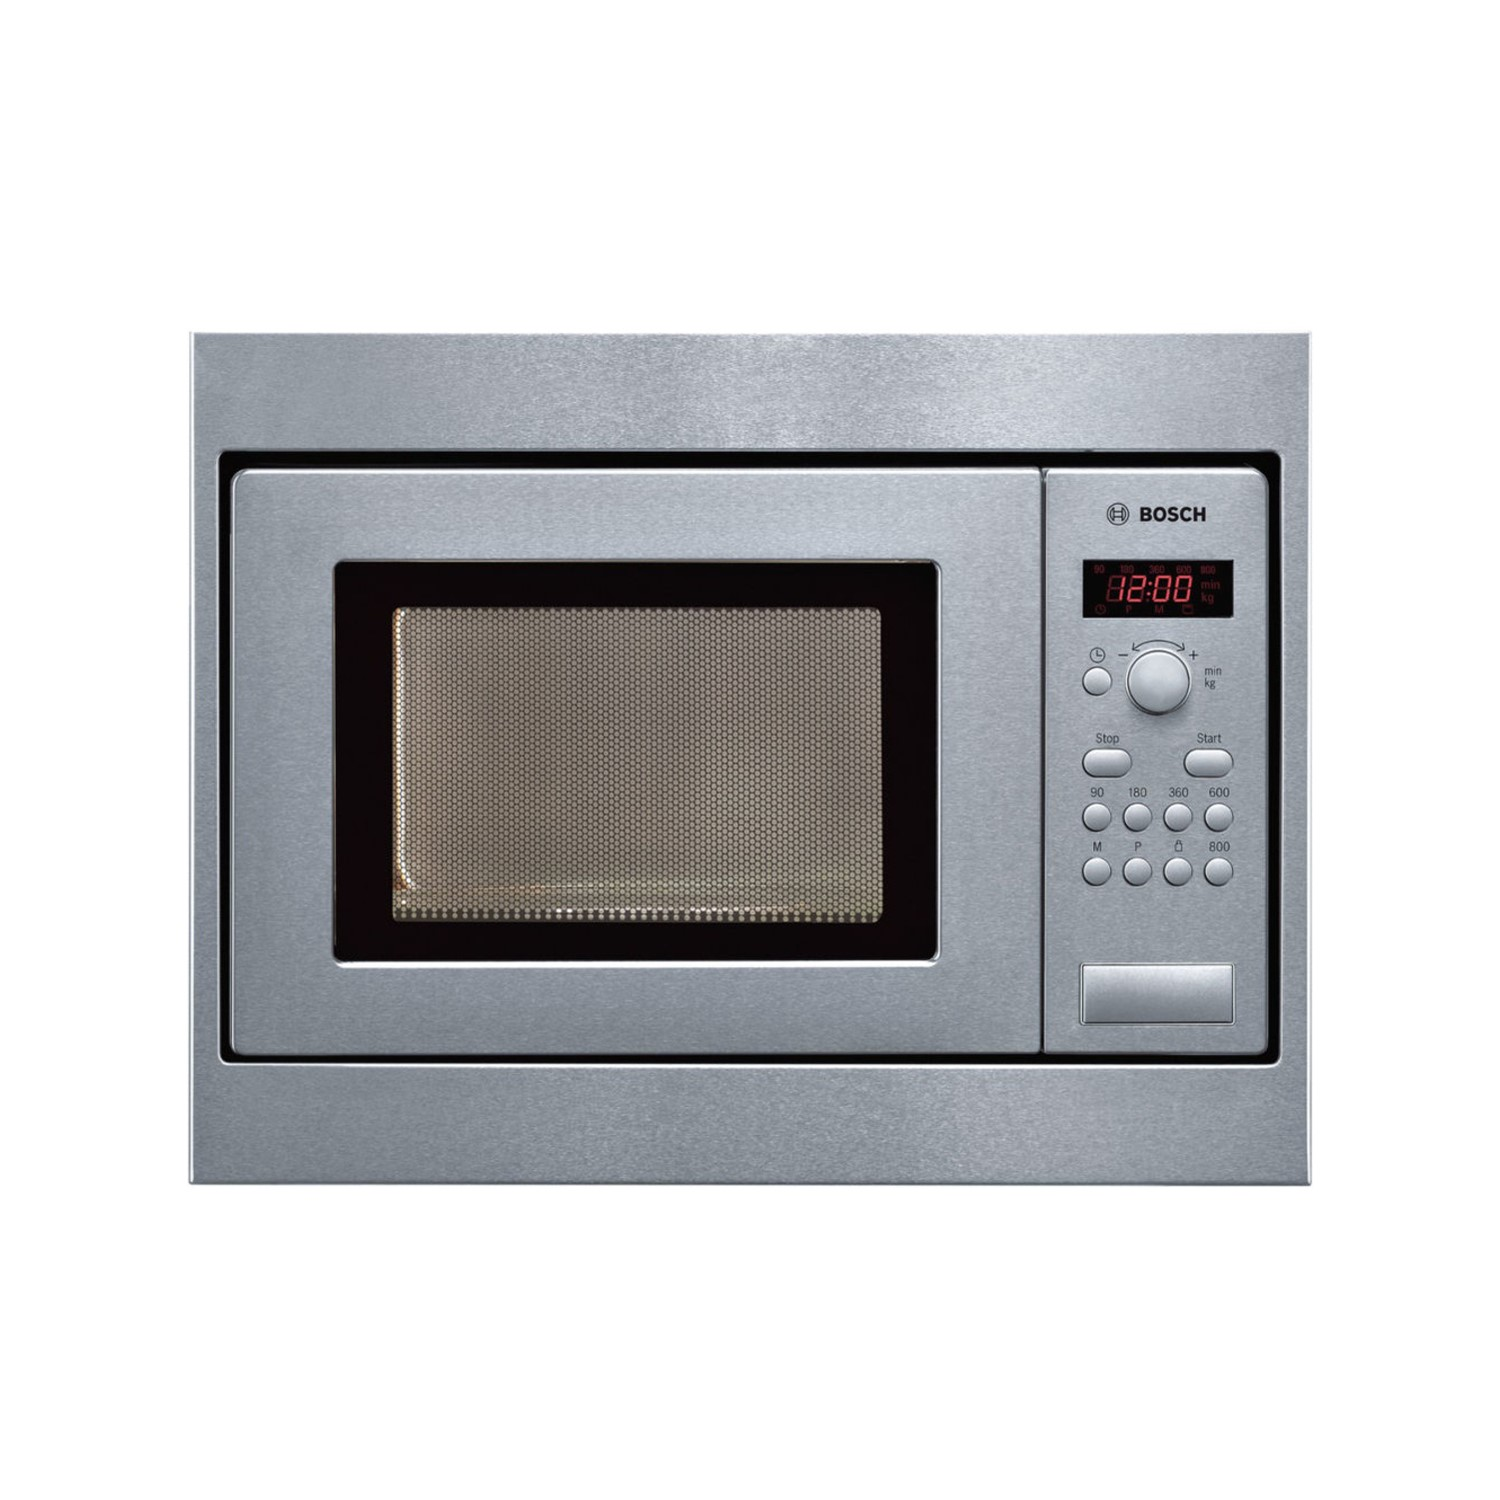 bosch hmt75m551b 800w 17l built in microwave oven for 50cm wide cabinet brushed steel